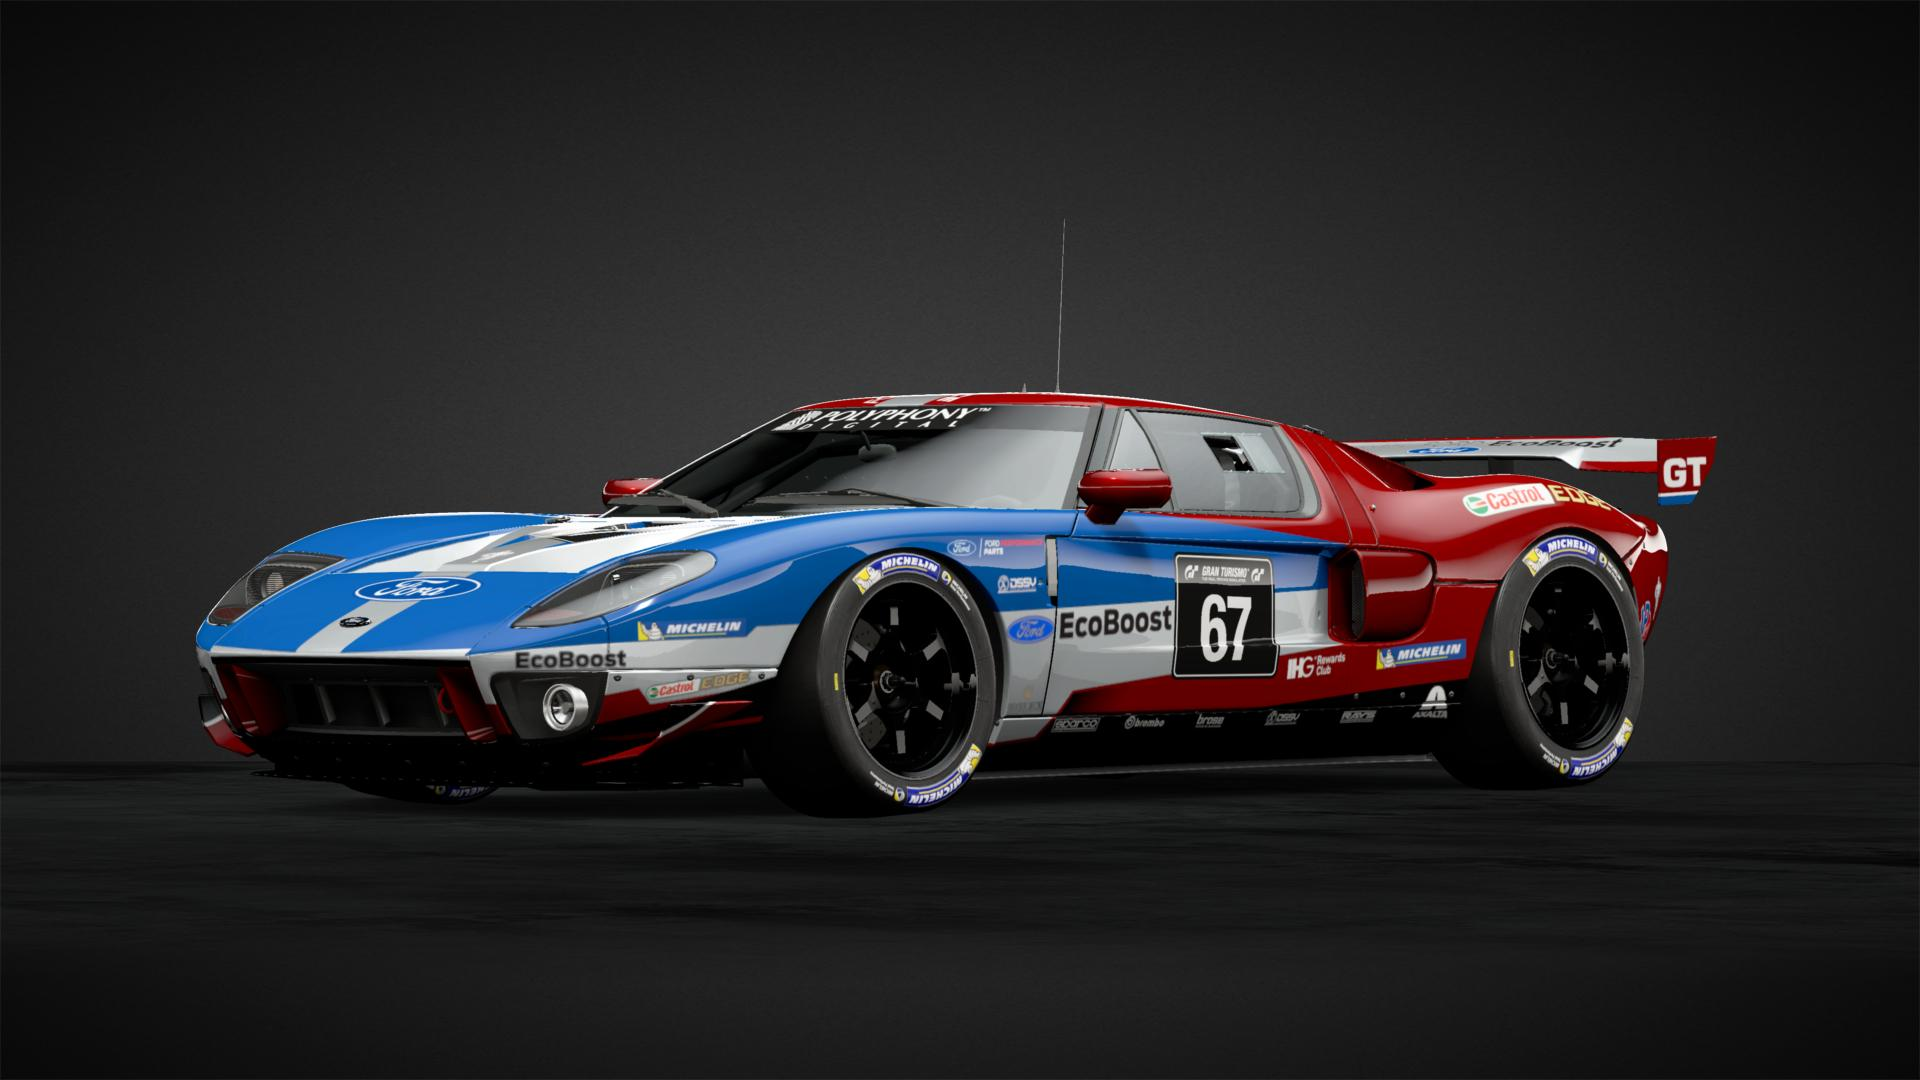 Ecoboost Ford Gt Gt Car Livery By Azabear Community Gran Turismo Sport